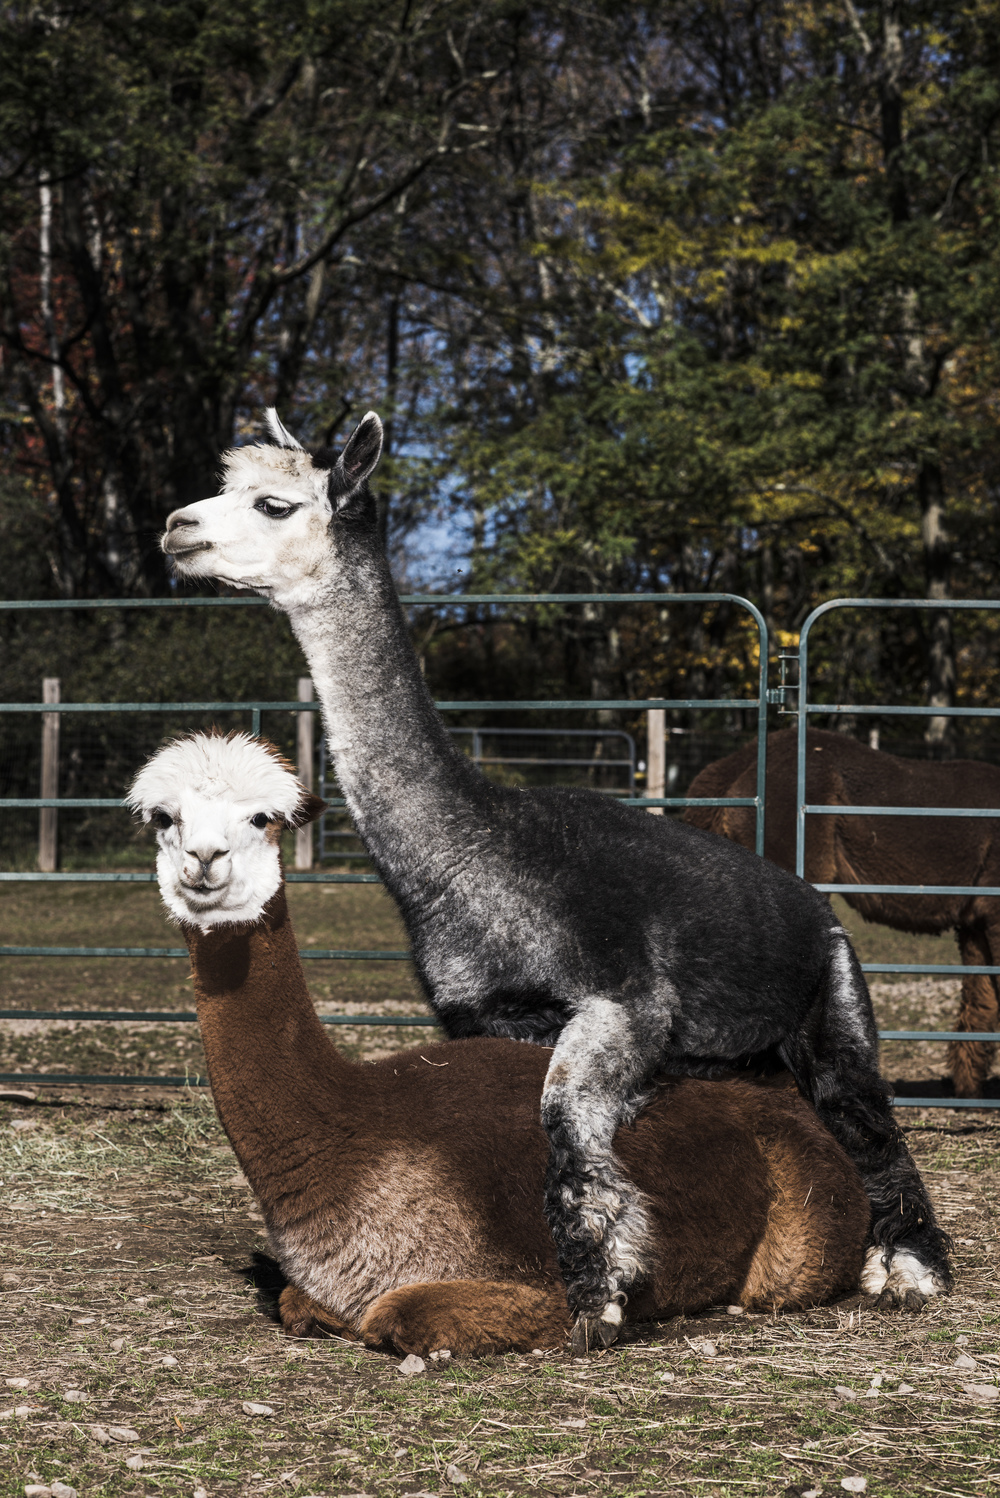 Imagine_Alpacas_eddie_adams_workshop_2015 (5 of 11).jpg